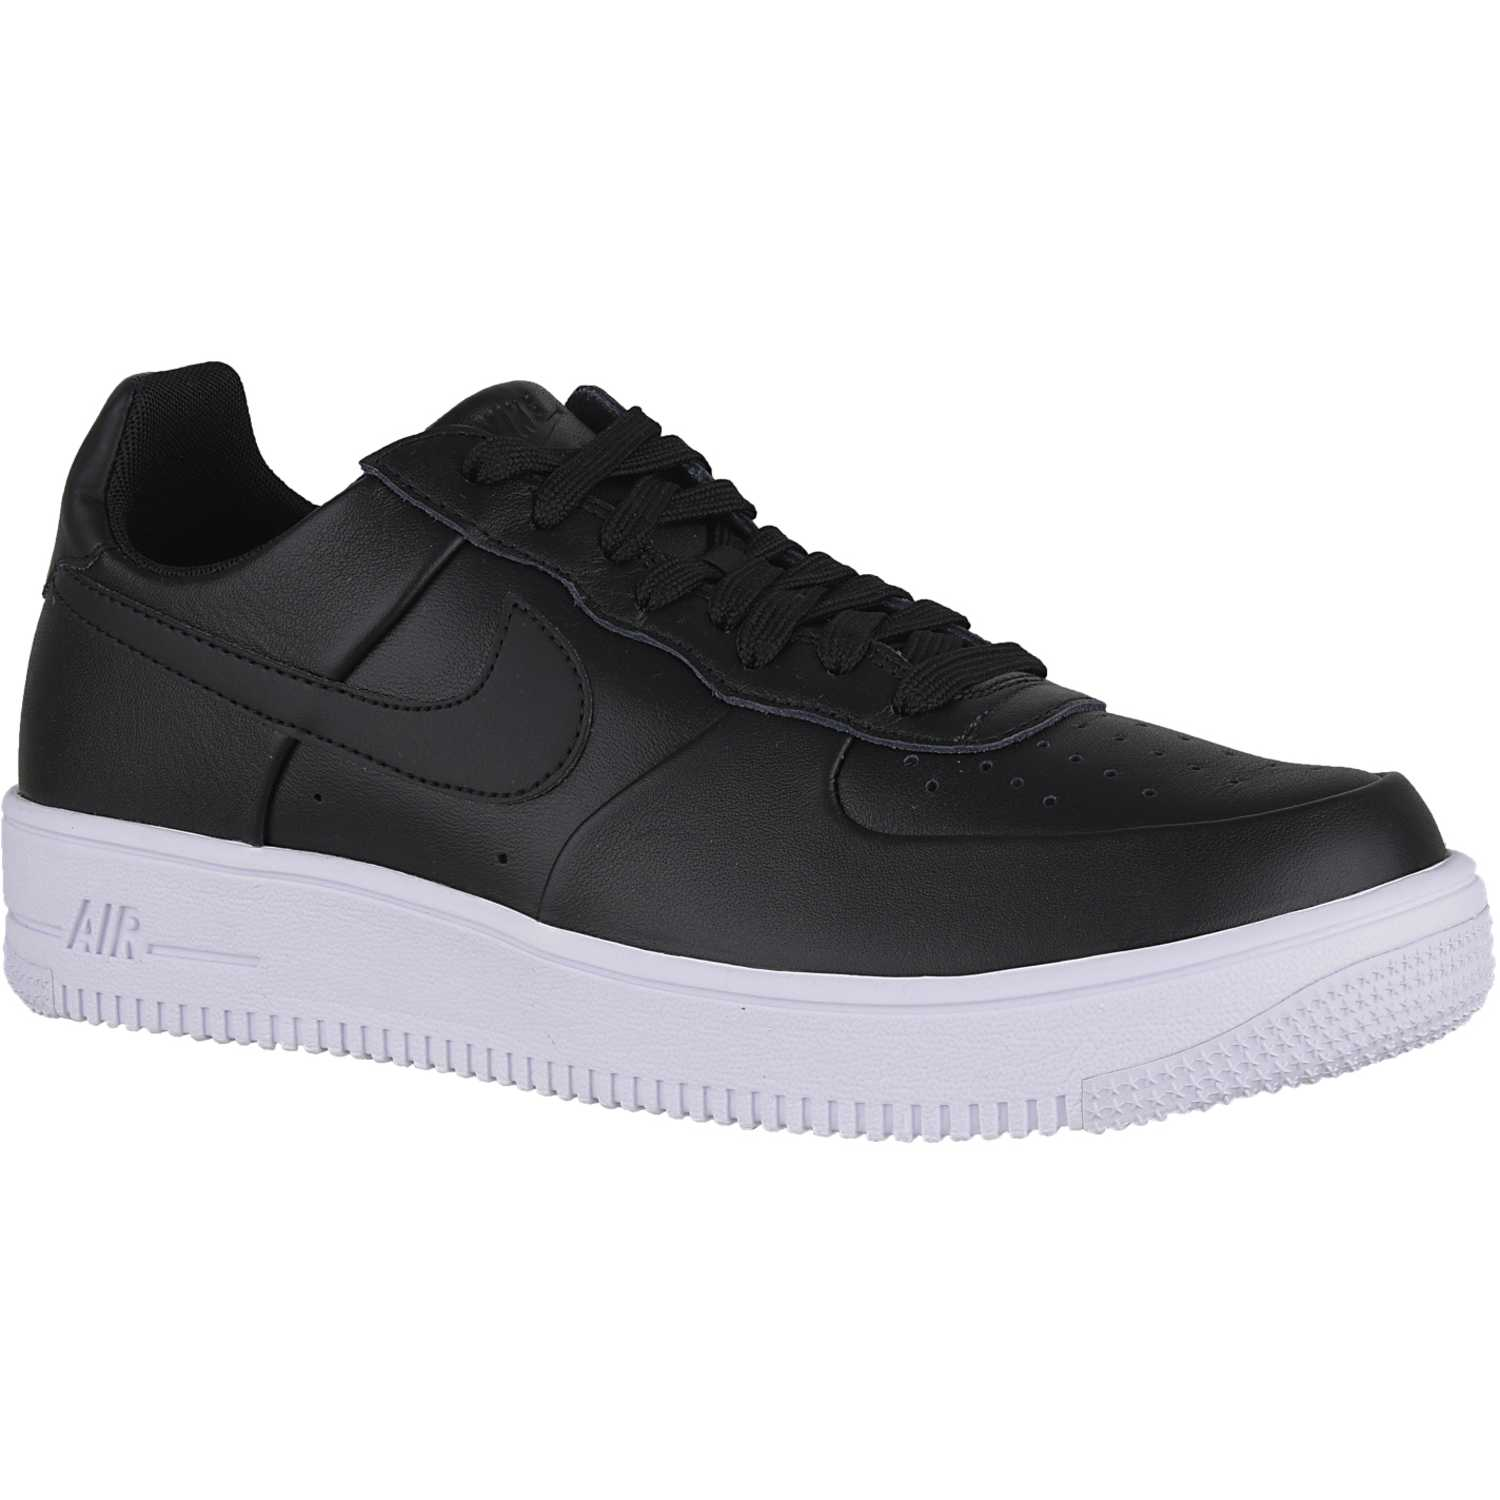 best sneakers c275d 1c5fb Zapatilla de Hombre Nike Negro   blanco air force 1 ultraforce lthr